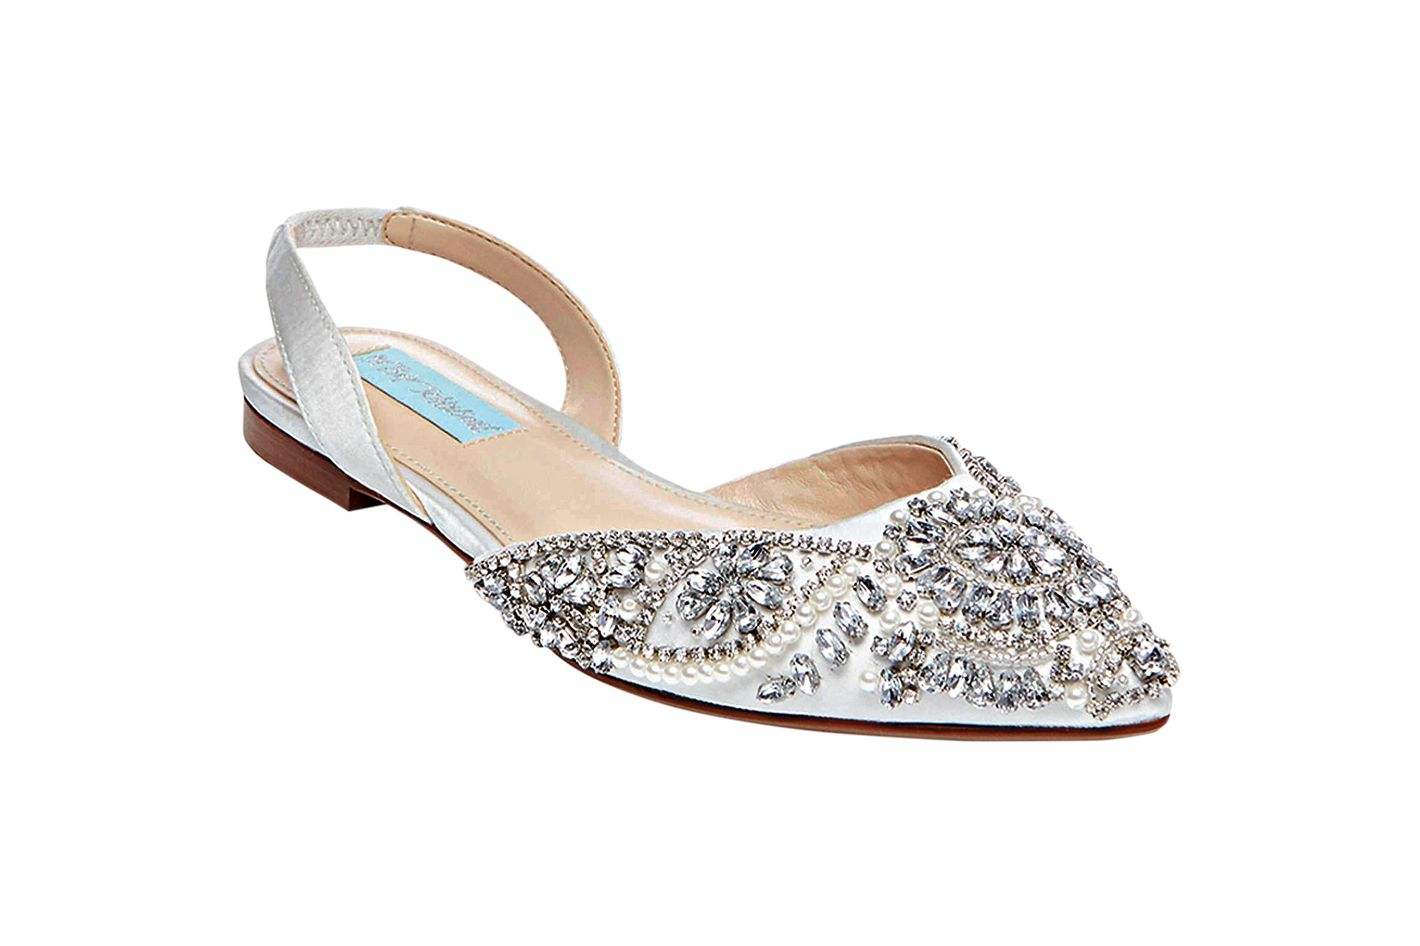 Betsey Johnson Molly Flats